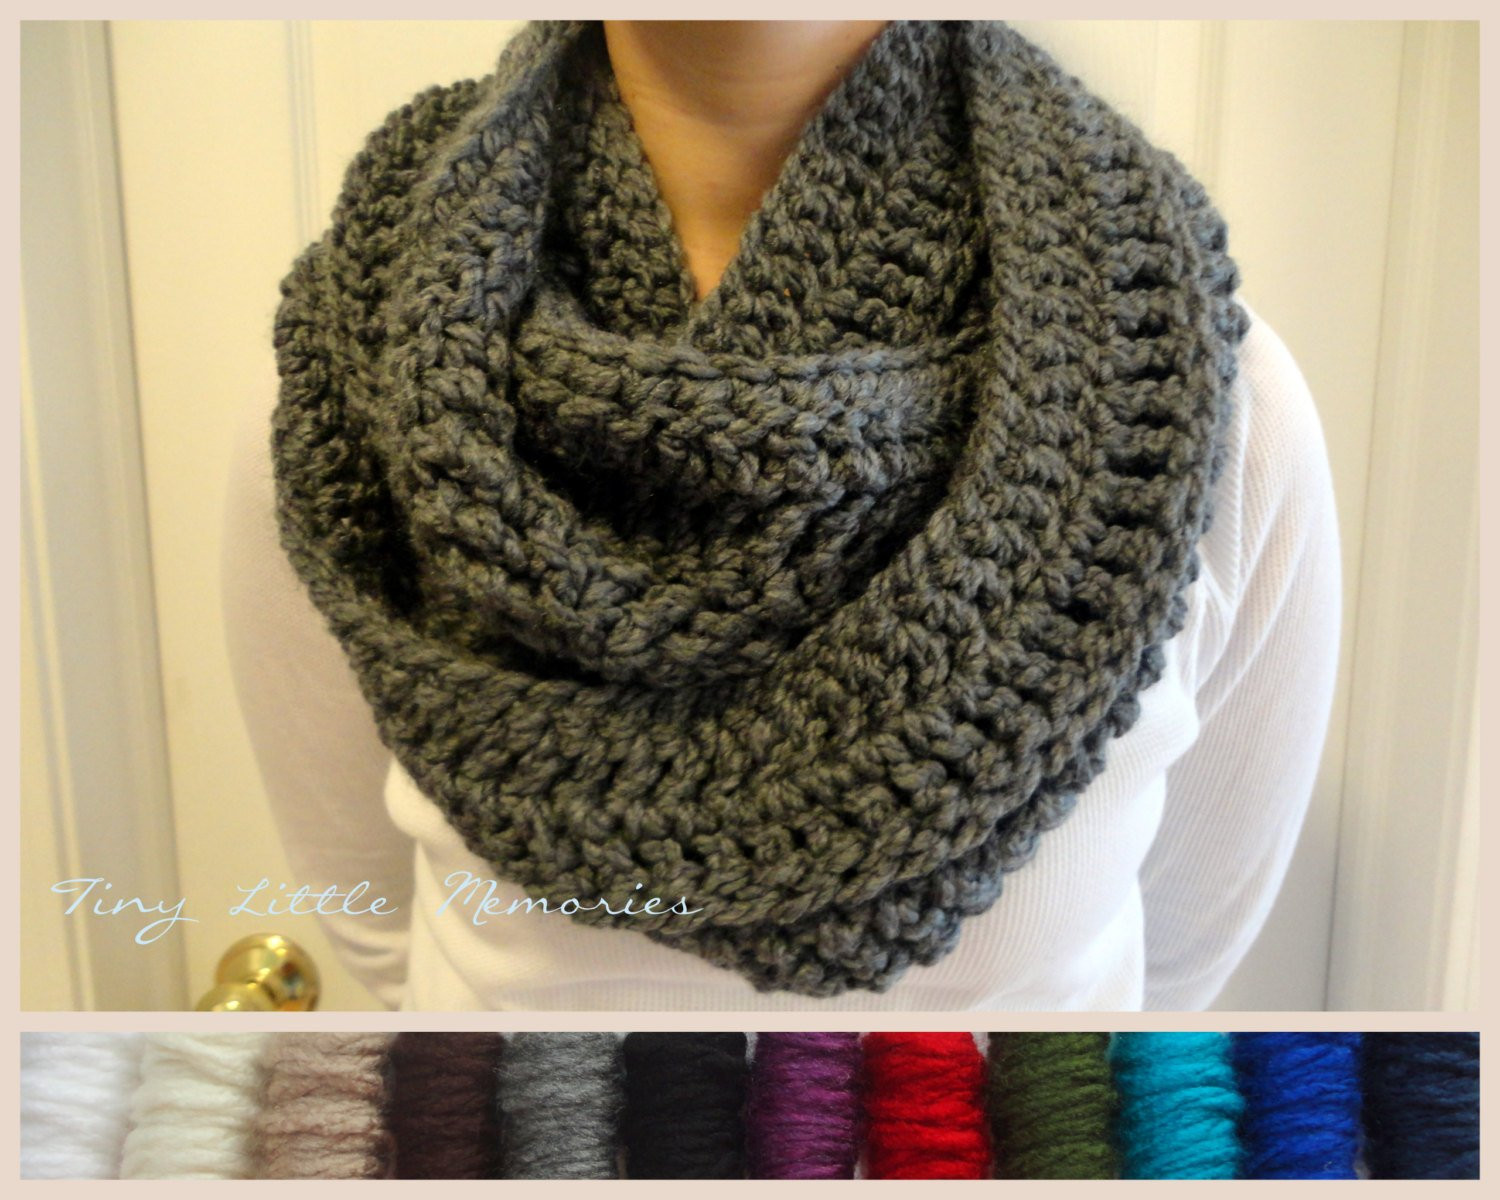 Crochet Infinity Scarves Awesome Charcoal Gray Infinity Scarf Crocheted Winter Scarf Circle Of New 44 Photos Crochet Infinity Scarves